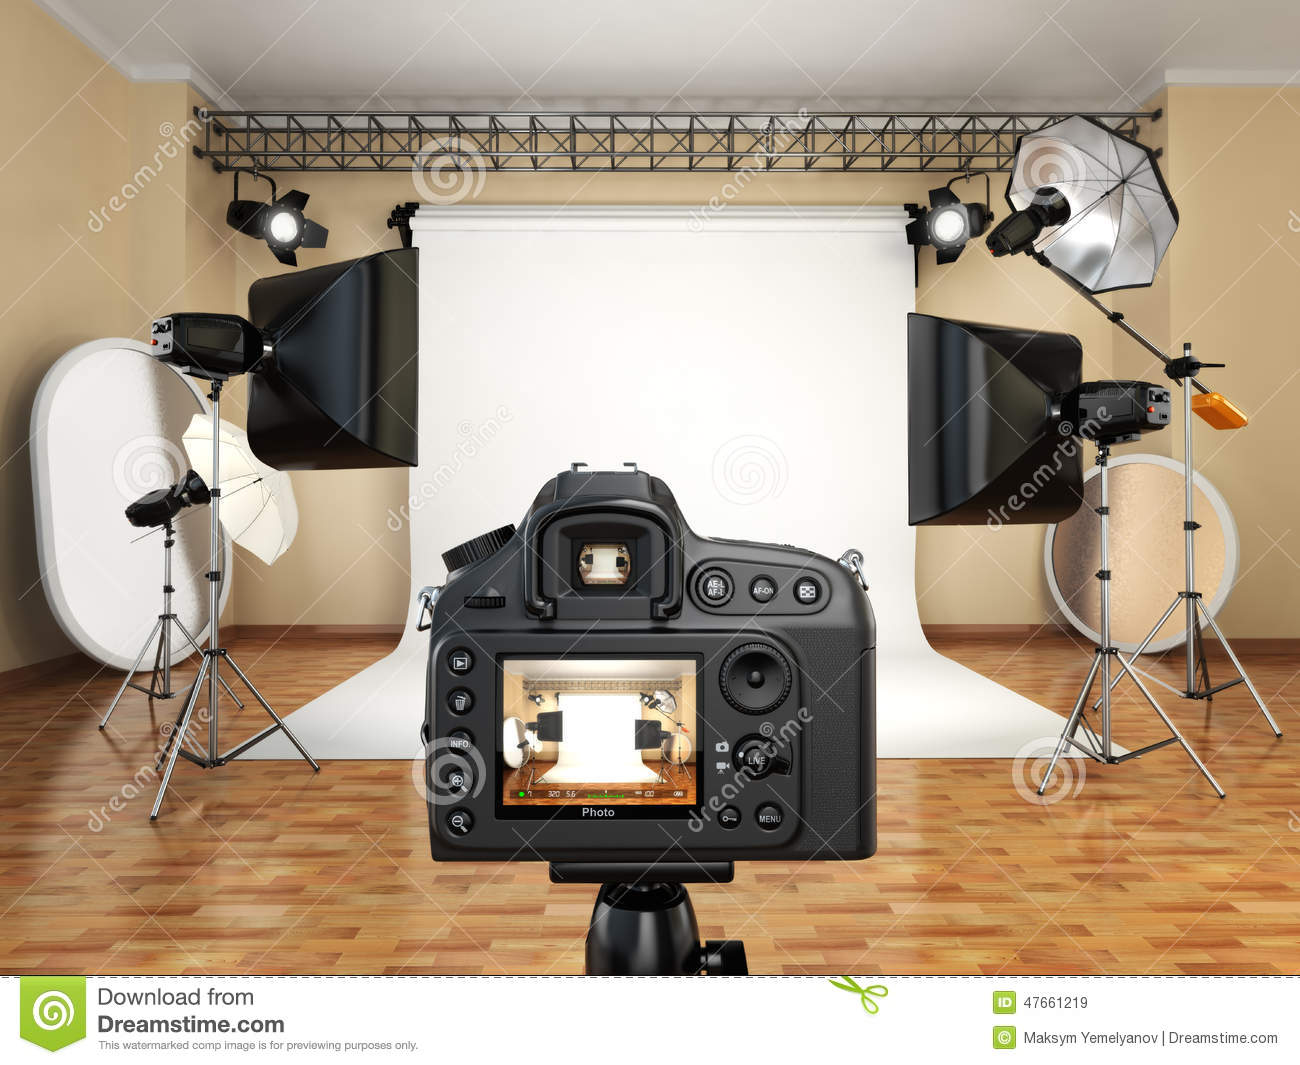 Dslr Camera In Photo Studio With Lighting Equipment